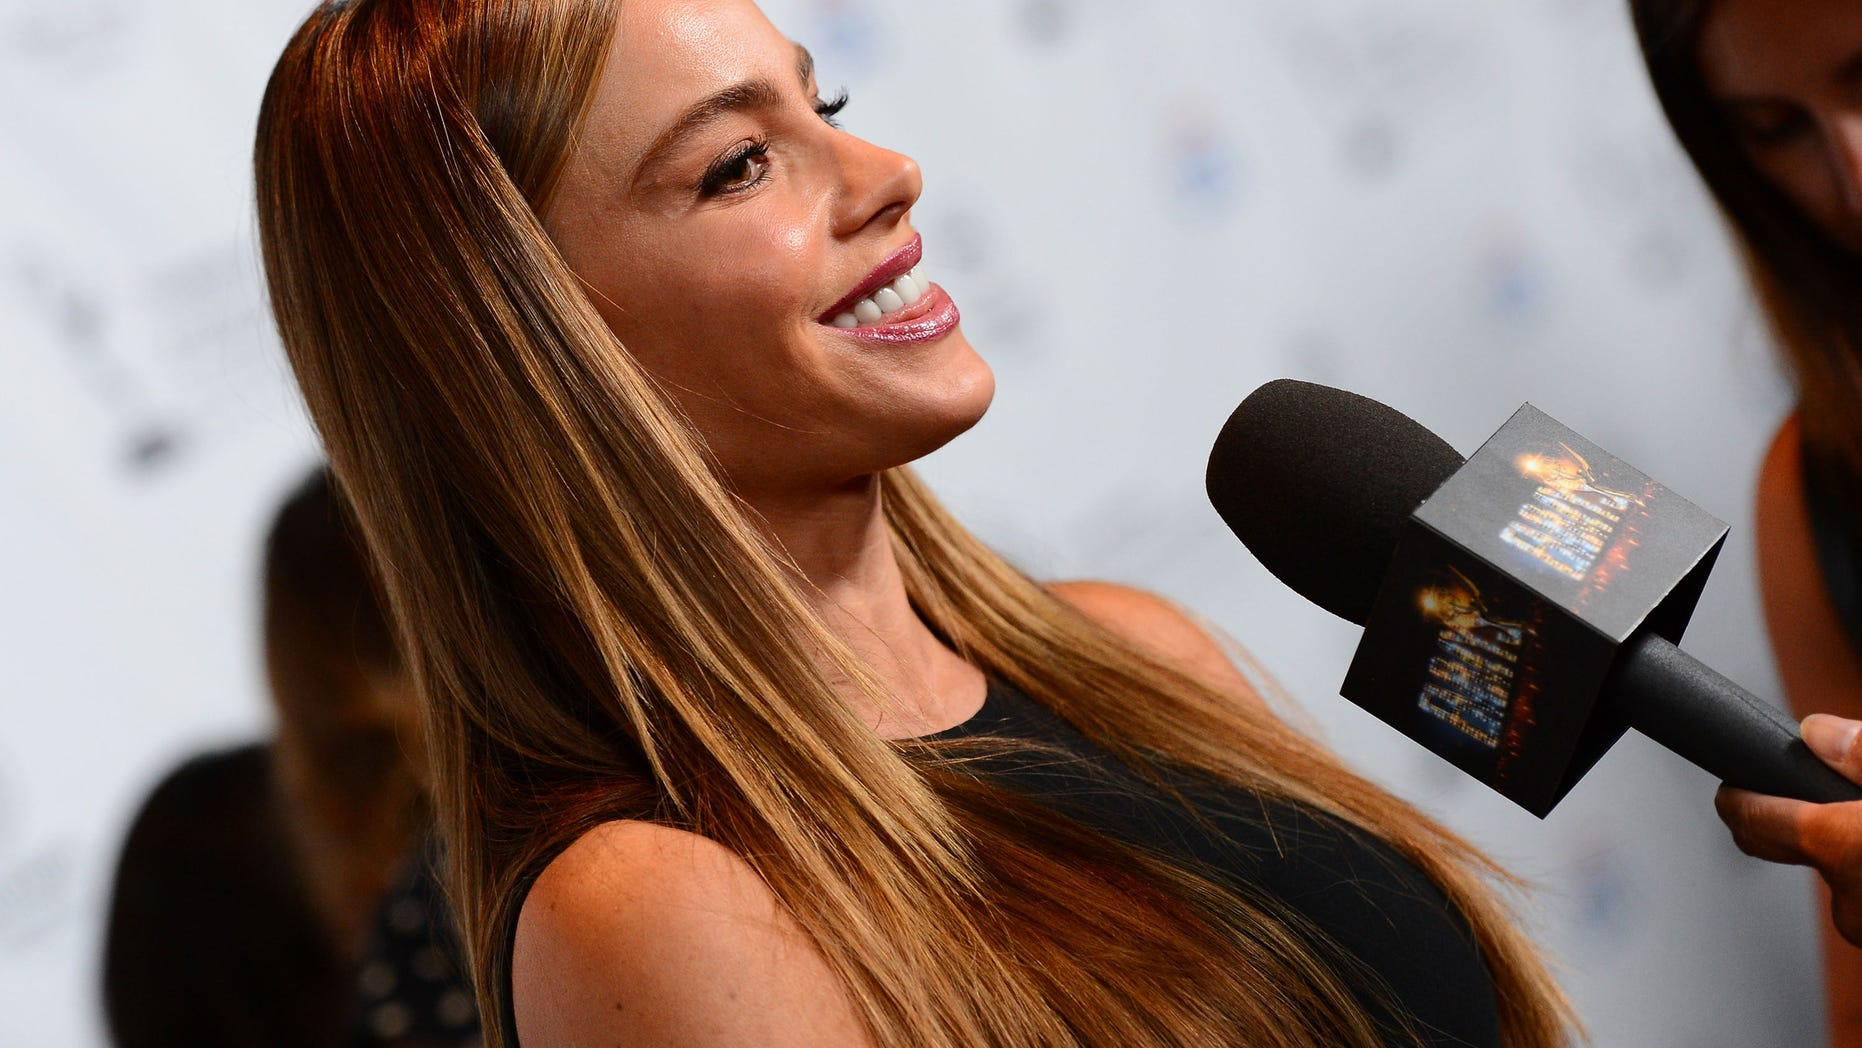 Sofia Vergara at the 65th Primetime Emmy Awards on August 19, 2013 in Universal City, California.